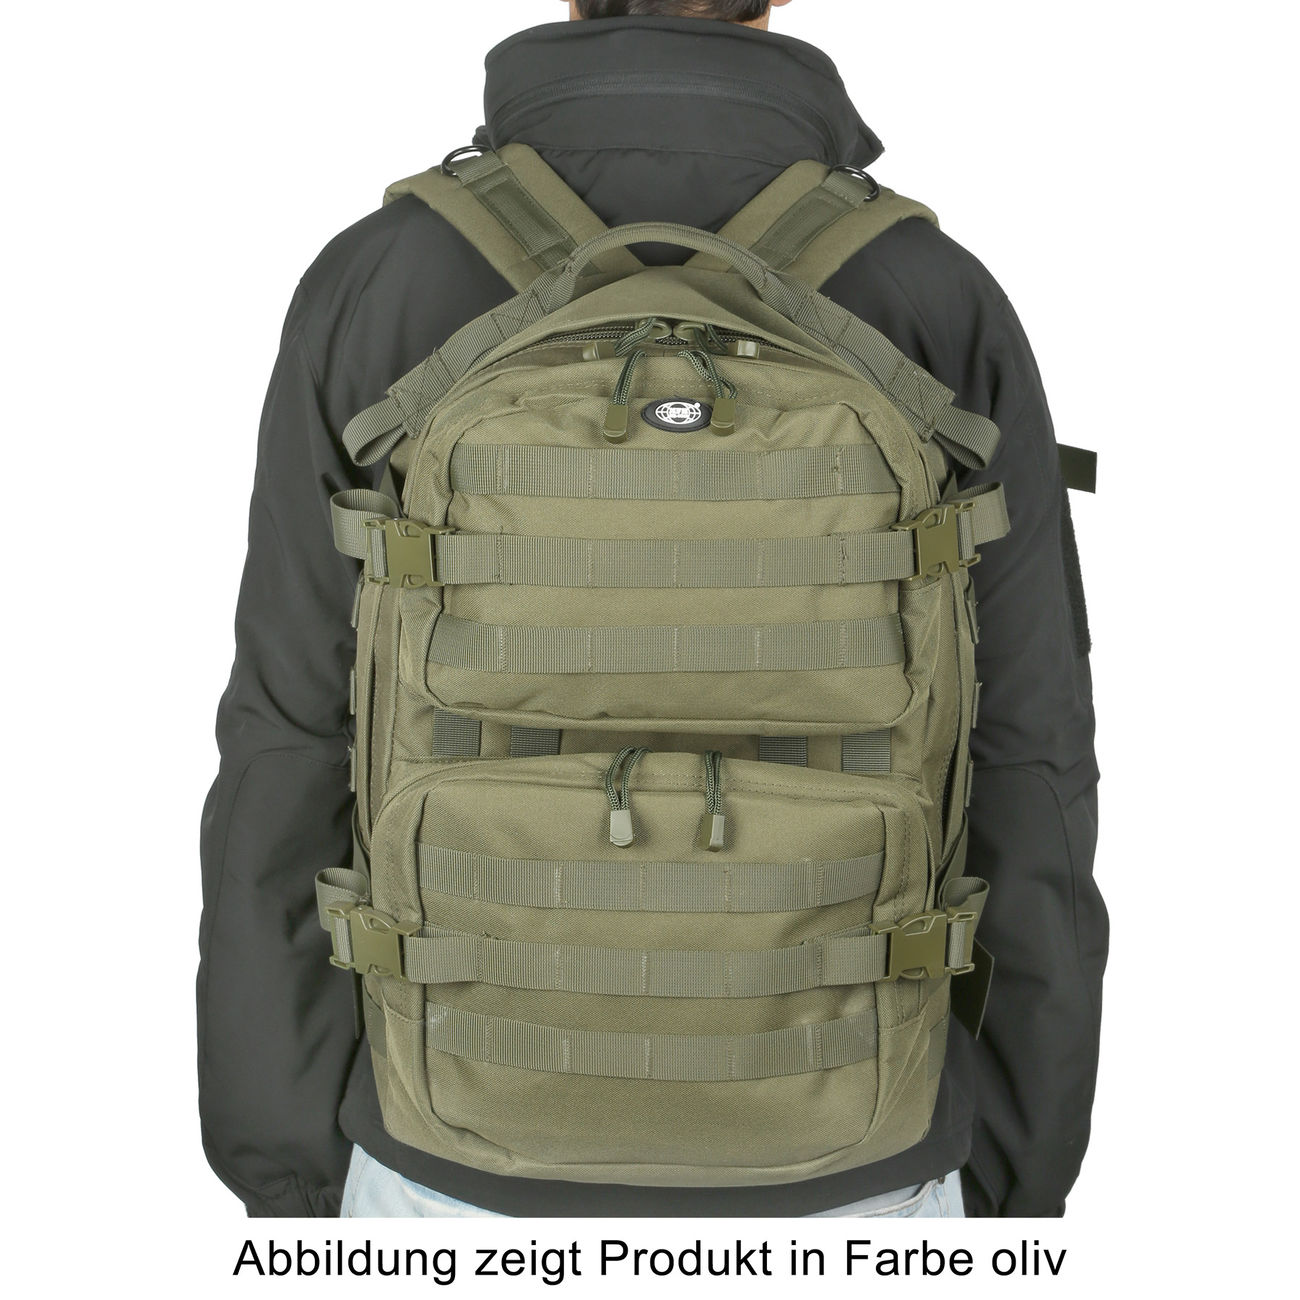 MFH Rucksack US Assault II vegetato desert 4